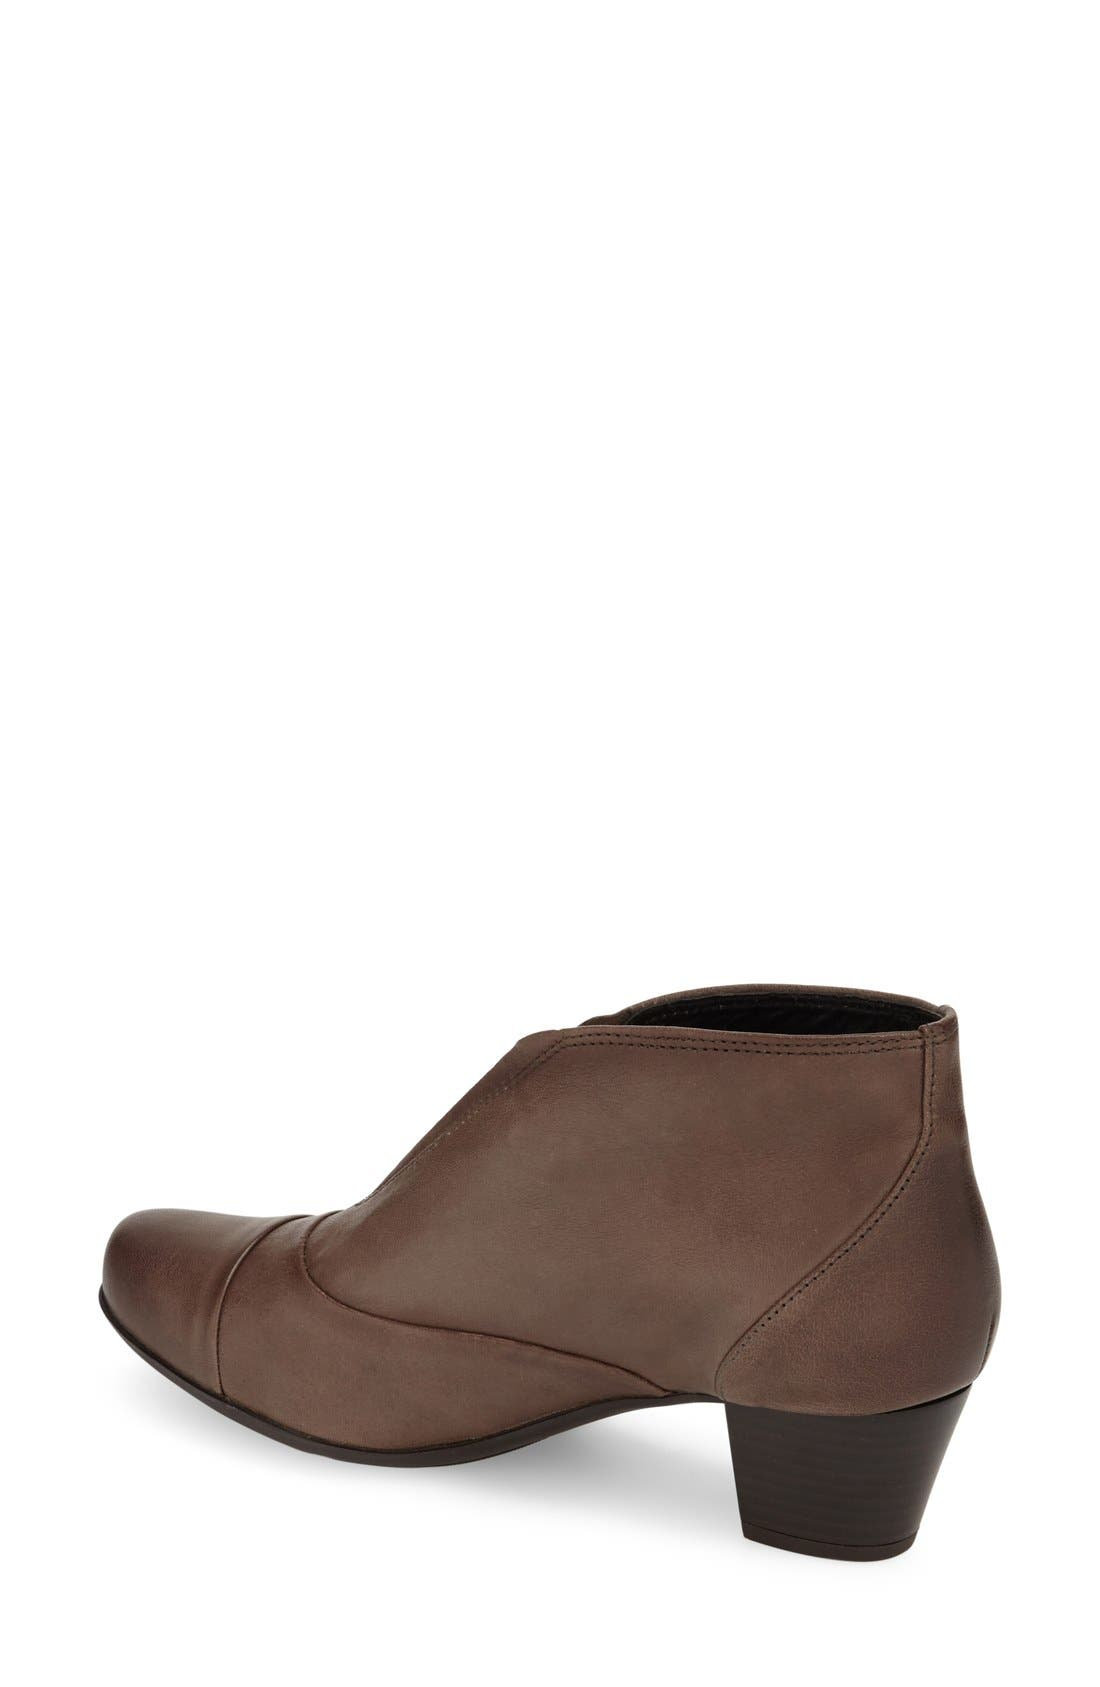 'Maddie' Bootie,                             Alternate thumbnail 3, color,                             250